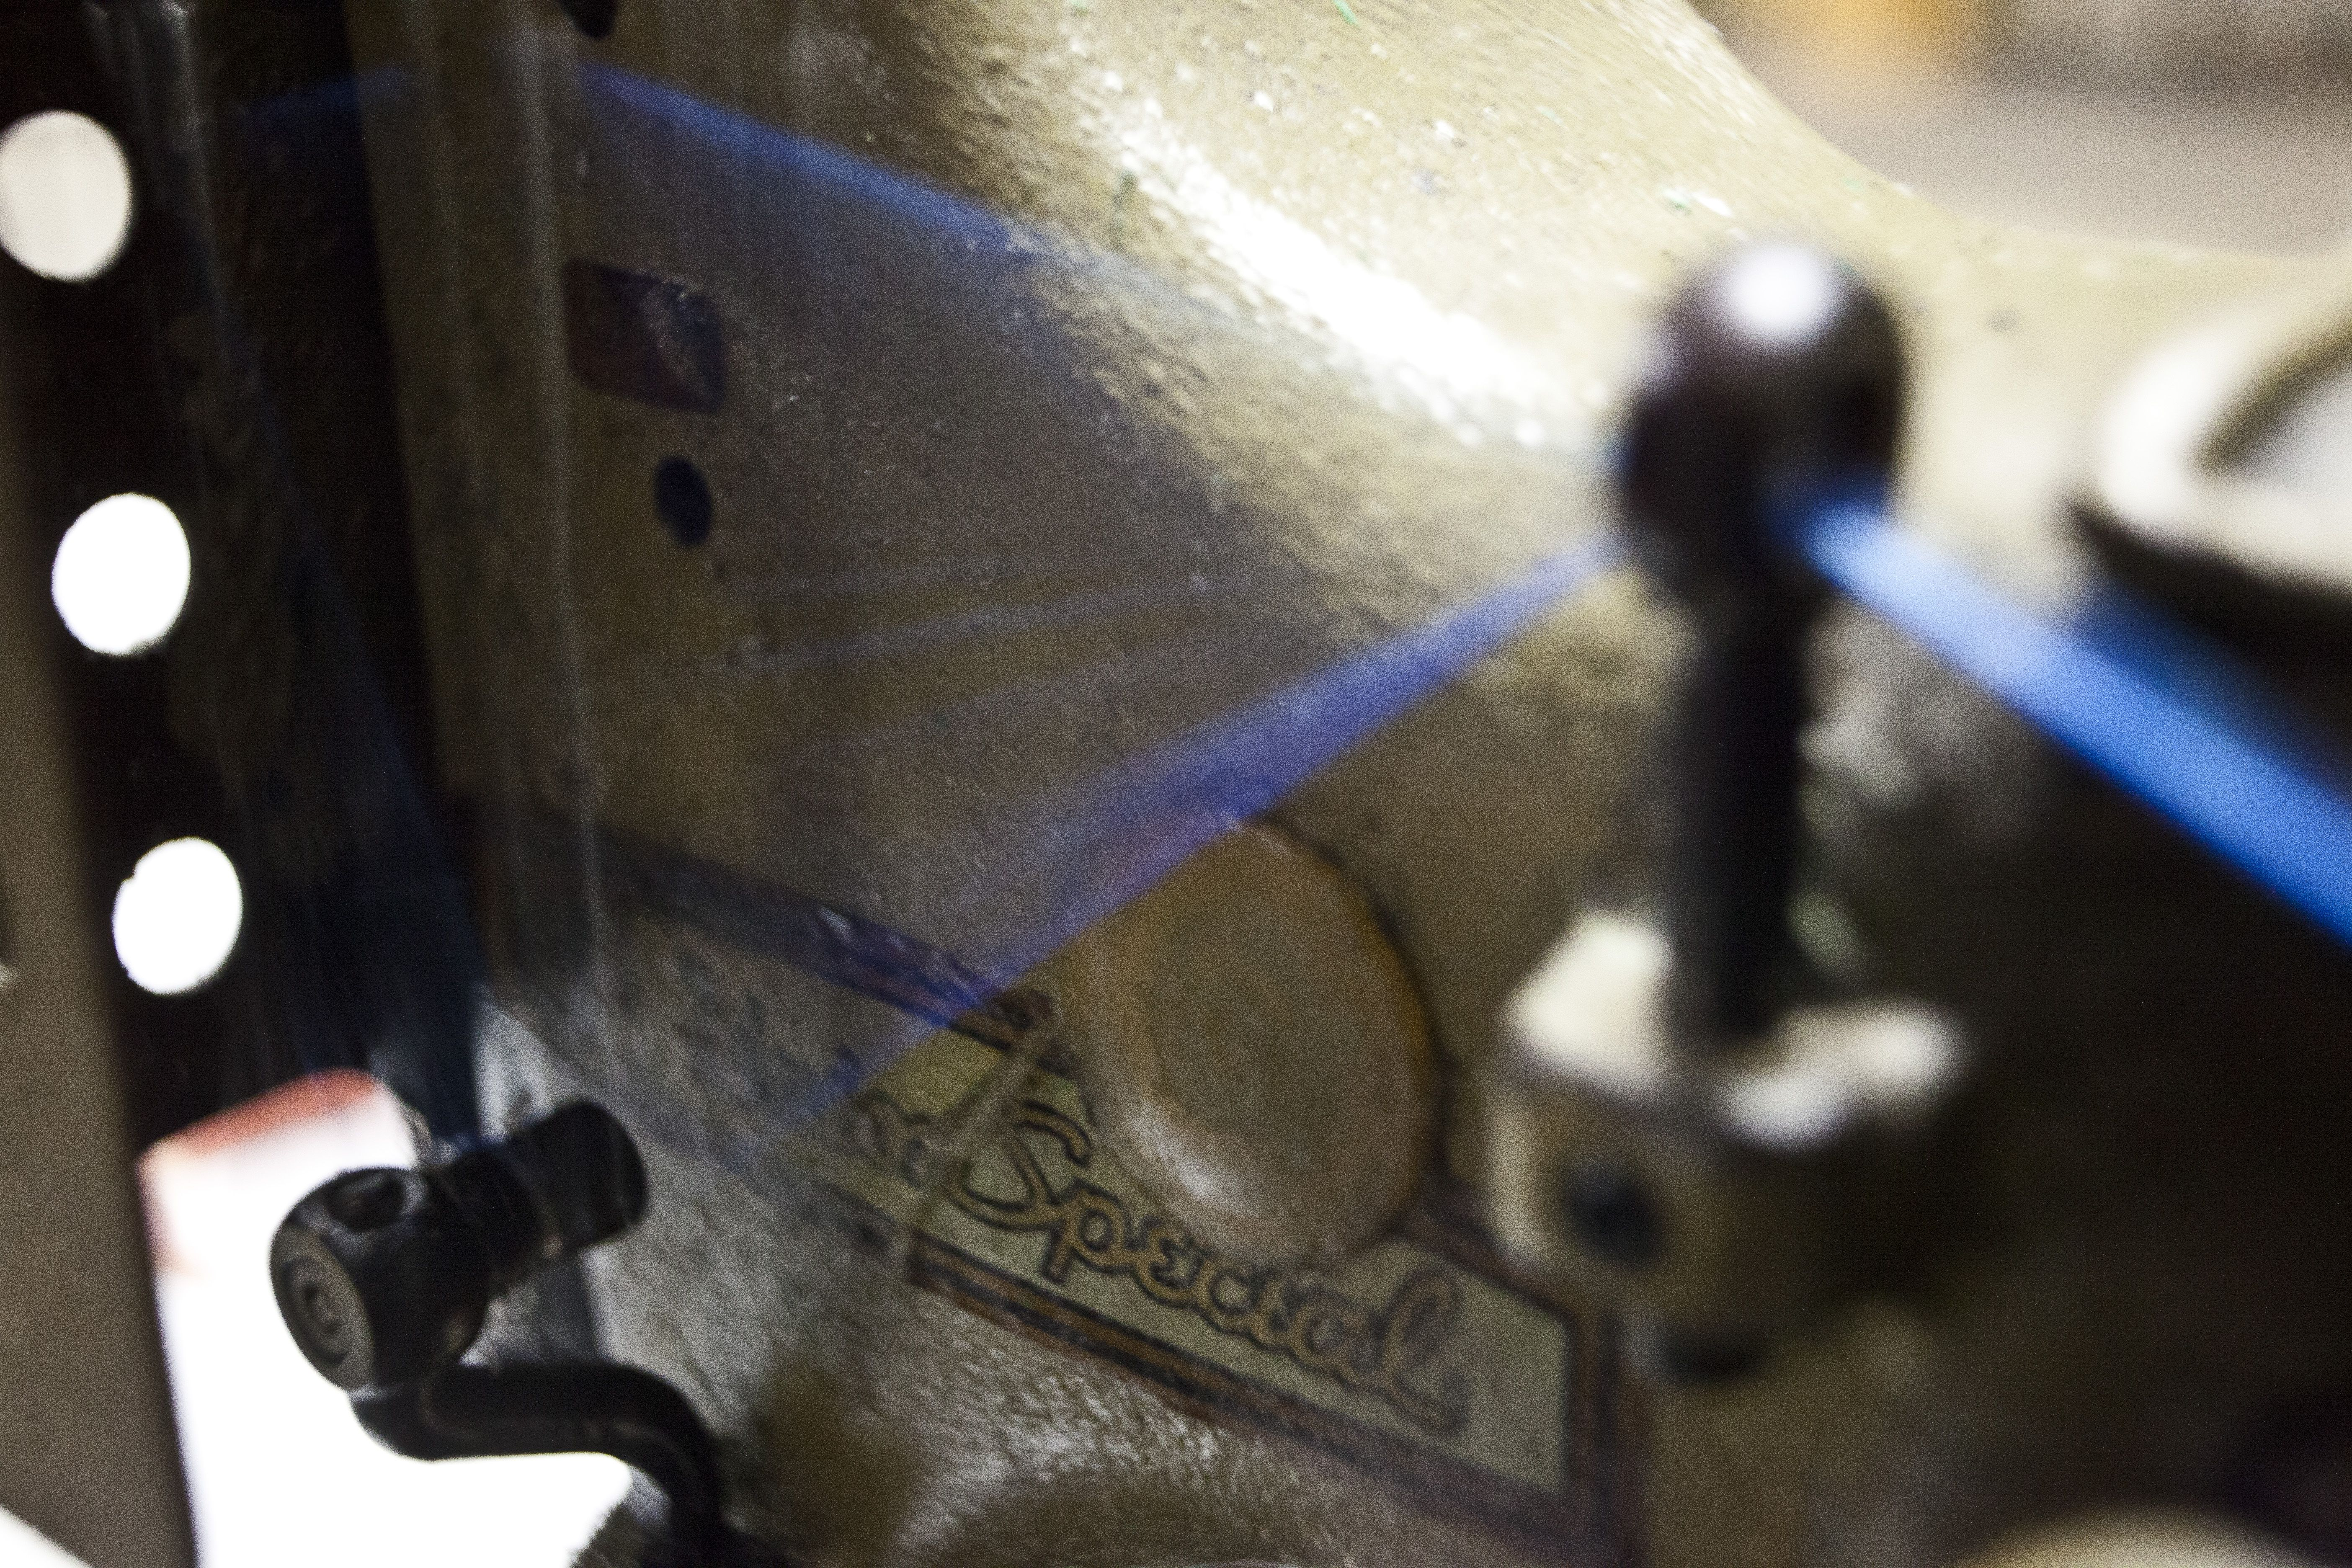 Union Special #Sewing Machine at Sackmaker